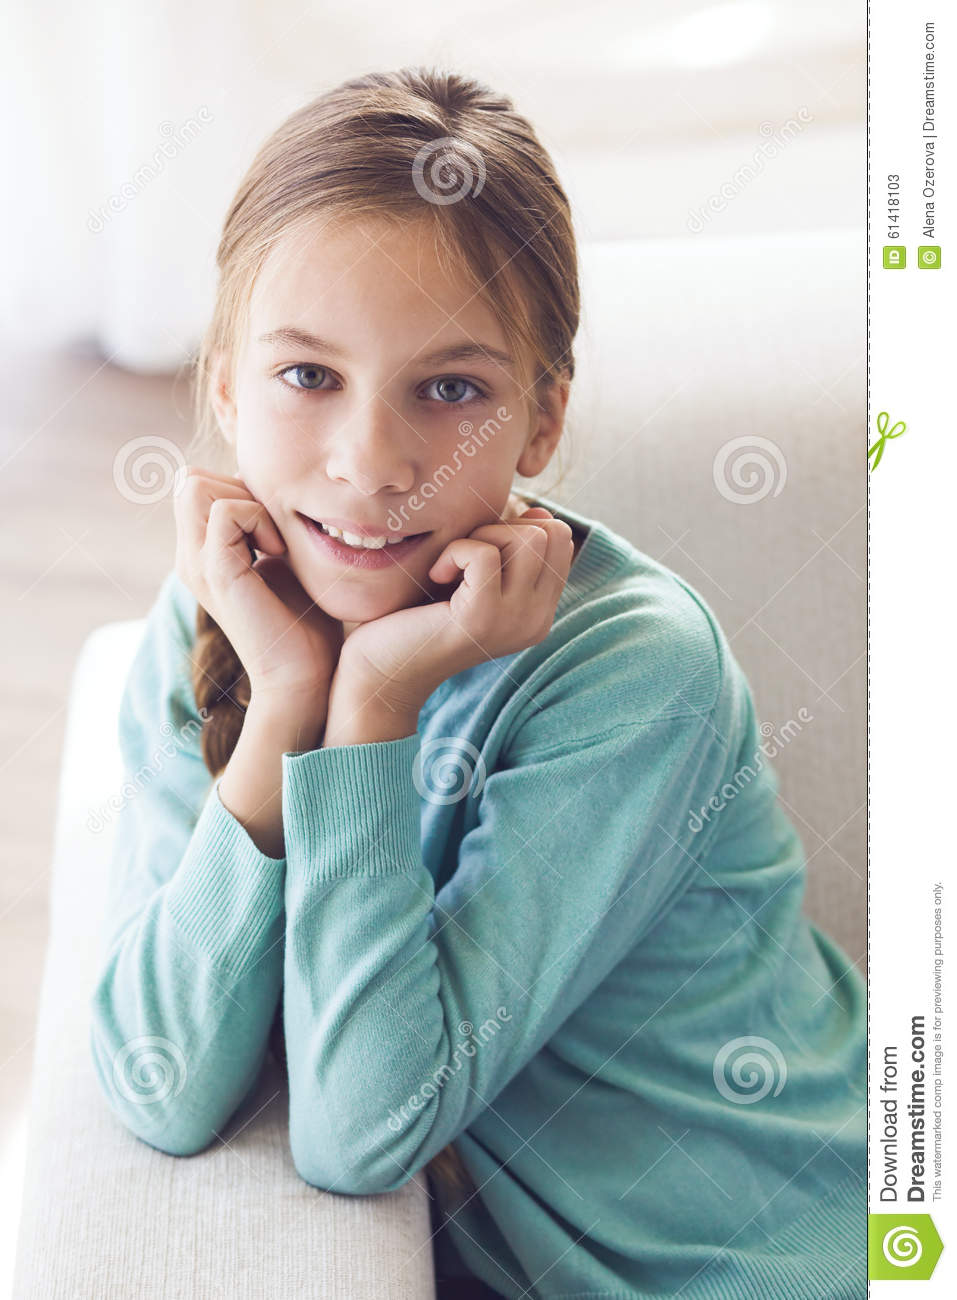 Pre teen girl stock image image of leisure chair face 61418103 - Image of teen ...